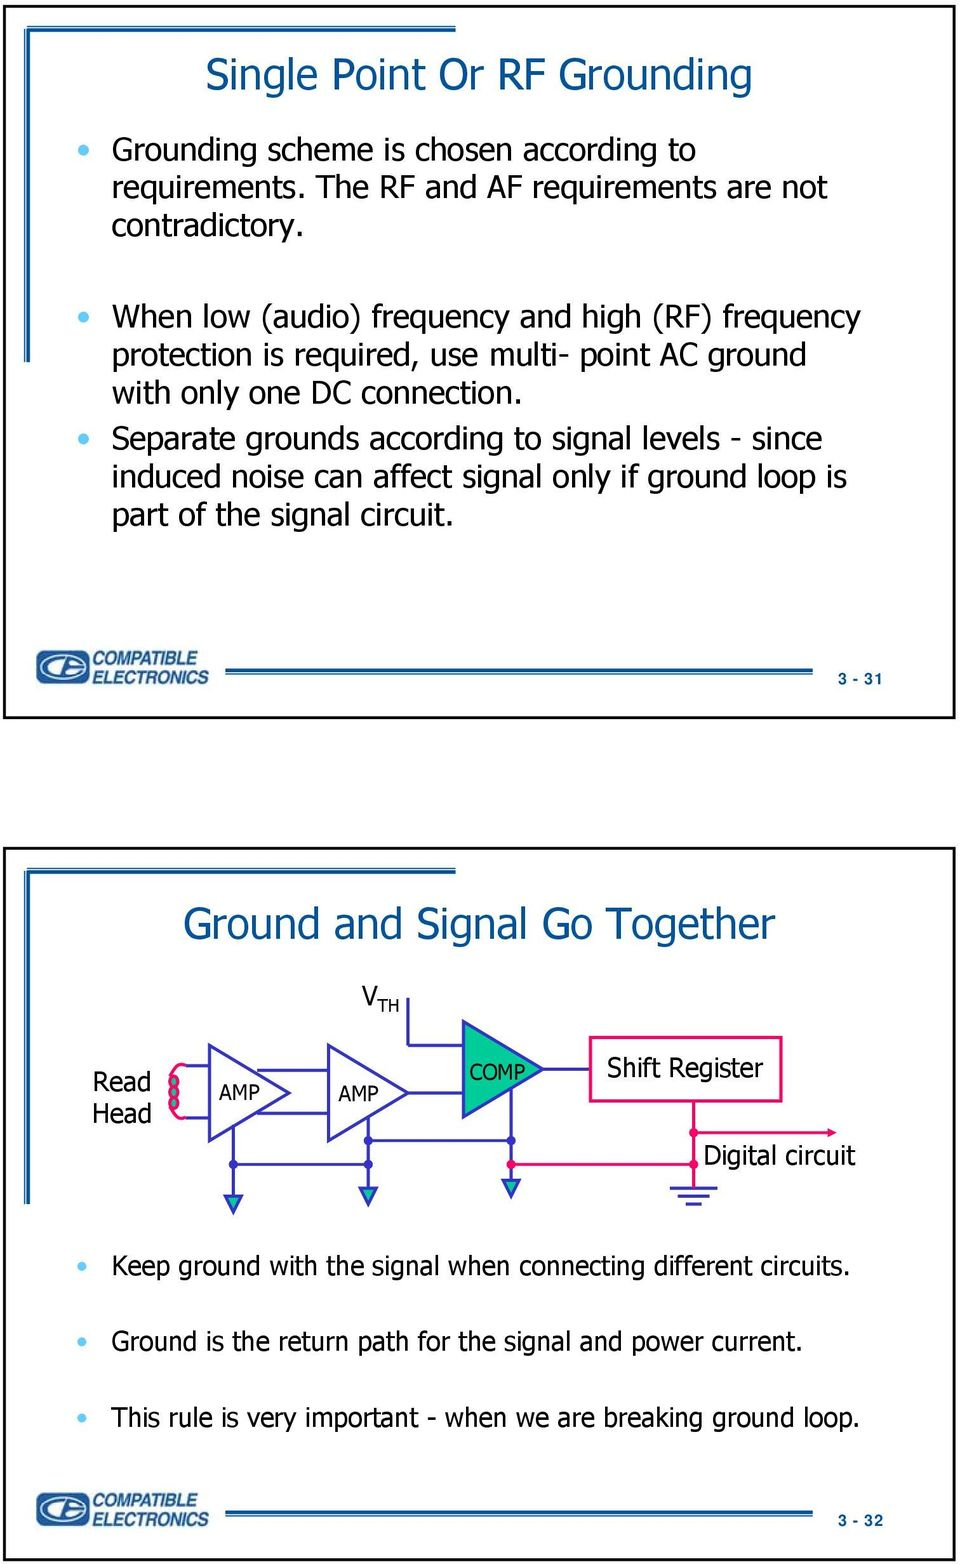 Separate grounds according to signal levels - since induced noise can affect signal only if ground loop is part of the signal circuit.